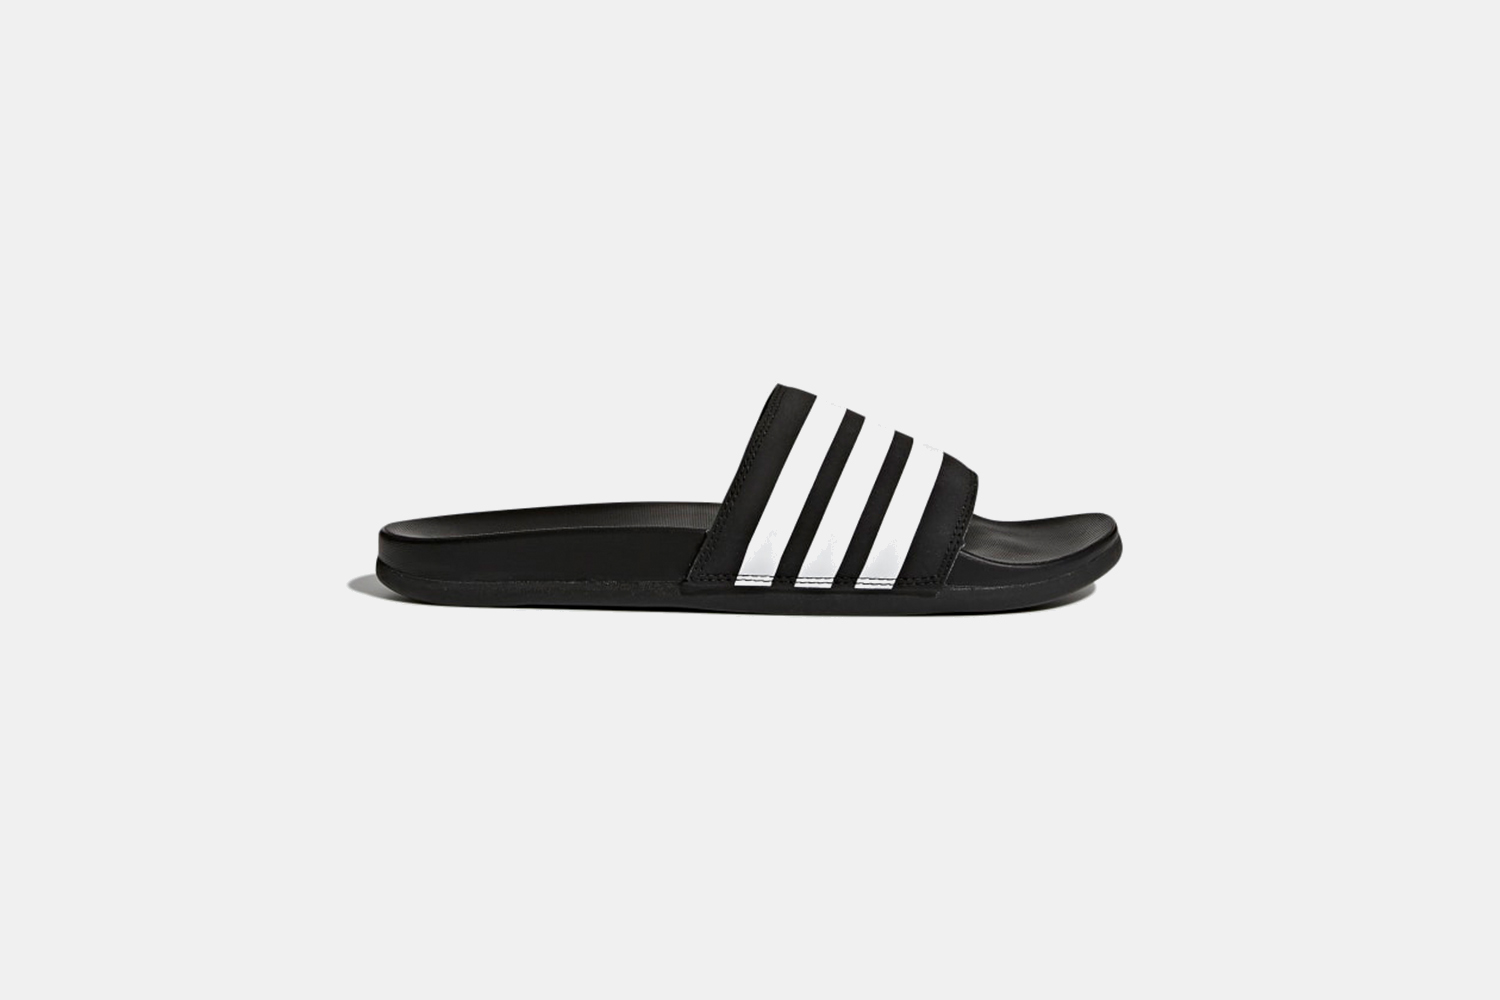 Deal: These Classic Adidas Slides Are Only $20